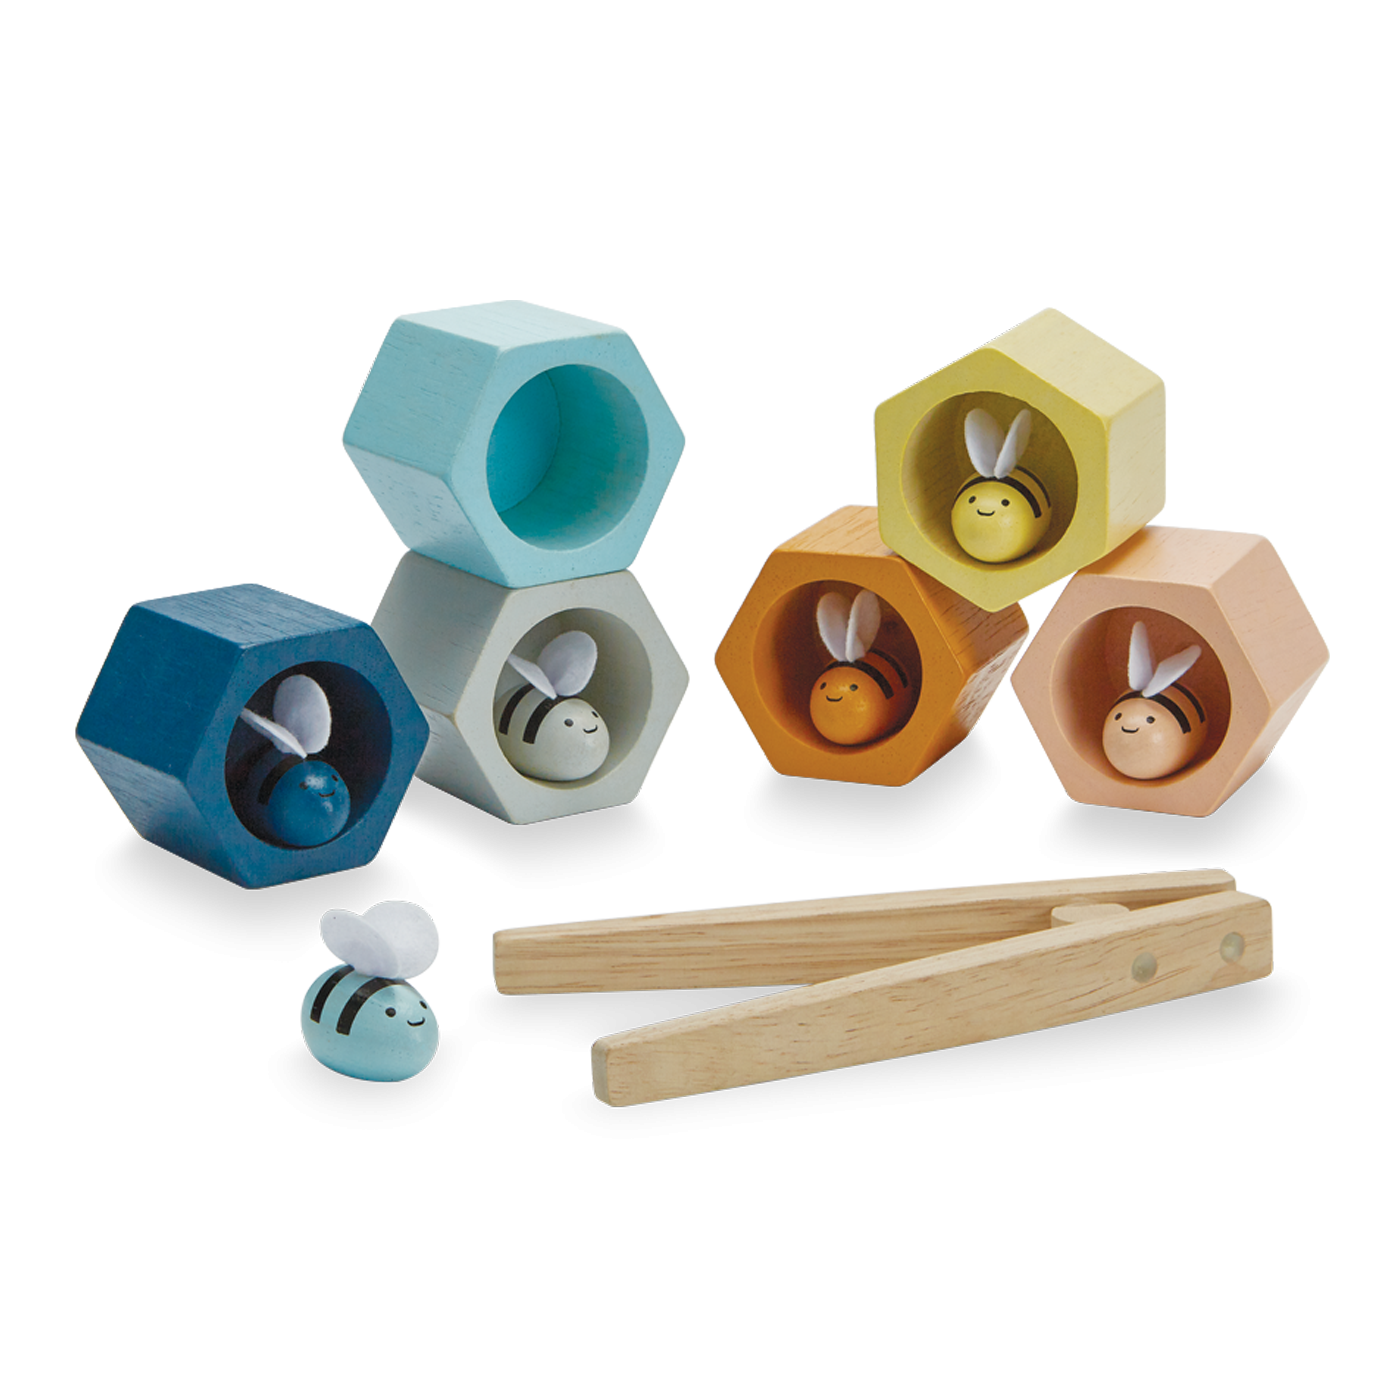 5410_PlanToys_Beehives_-_Orchard_Learning_and_Education_3yrs_Fine_Motor_Language_and_Communications_Coordination_Concentration_Creative_Mathematical_Wooden_toys_Education_toys_Safety_Toys_Non-toxic_0.png